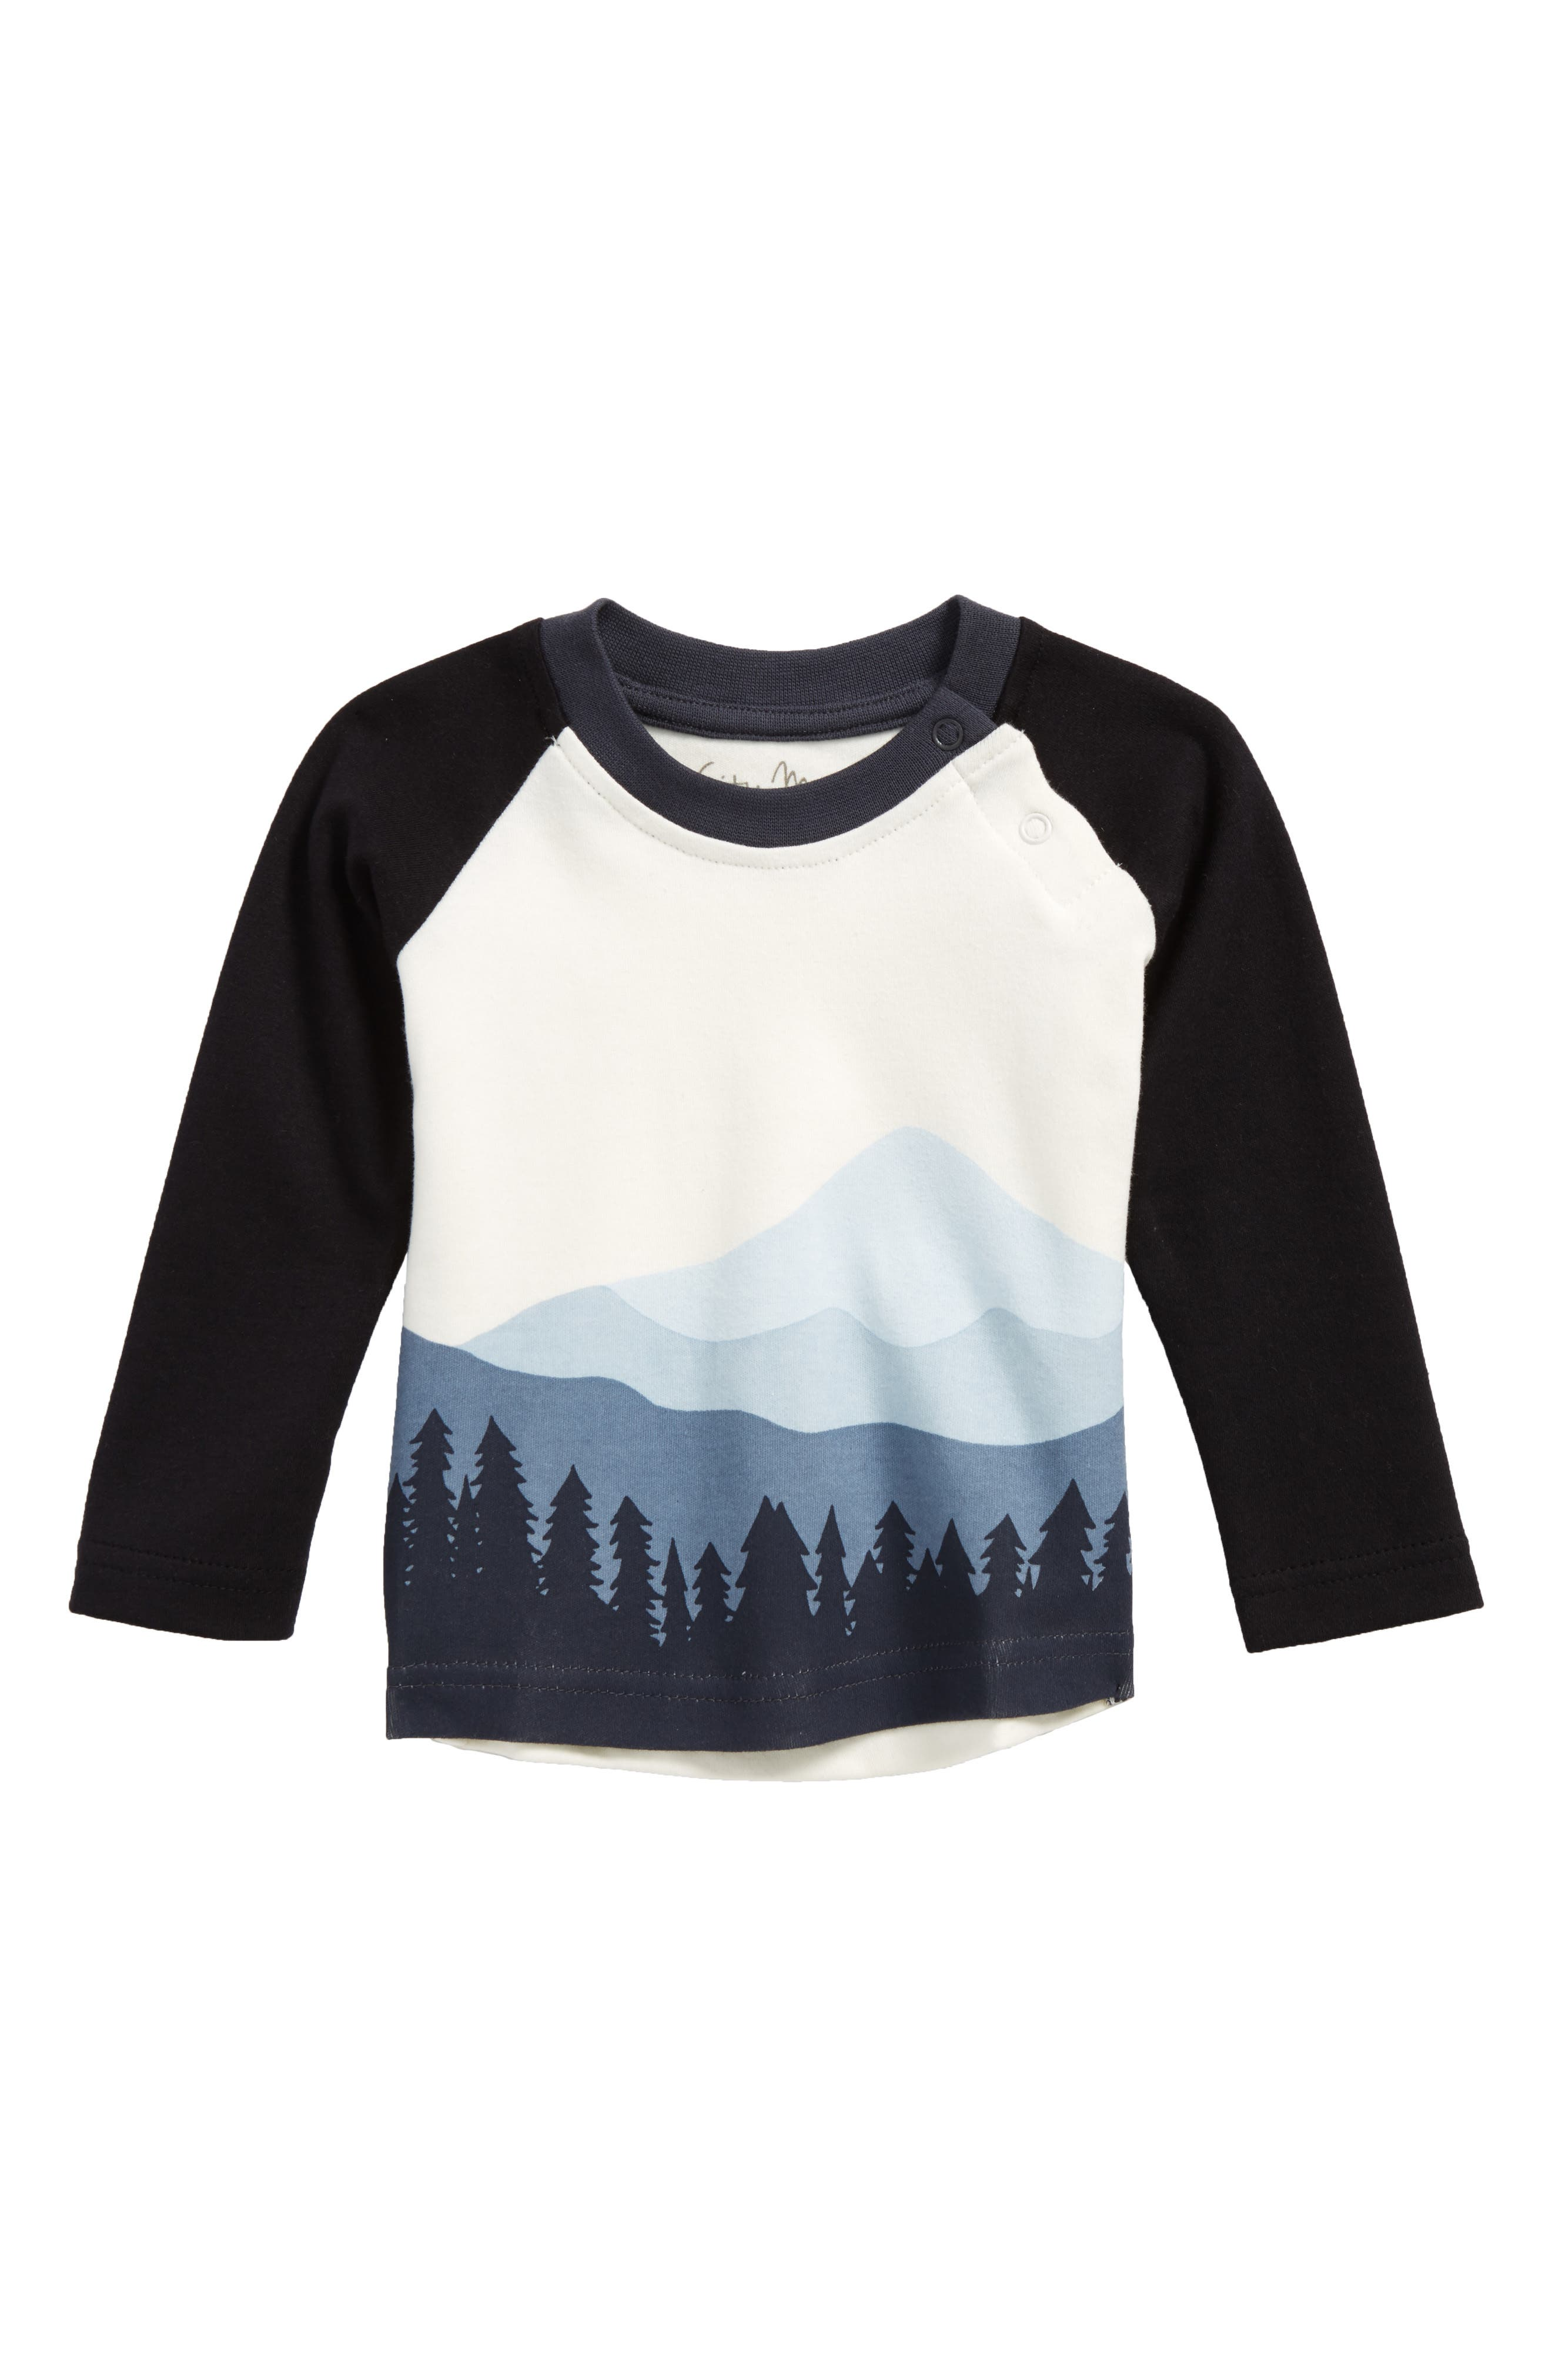 Main Image - City Mouse Mountain Graphic Organic Cotton T-Shirt (Baby Boys)